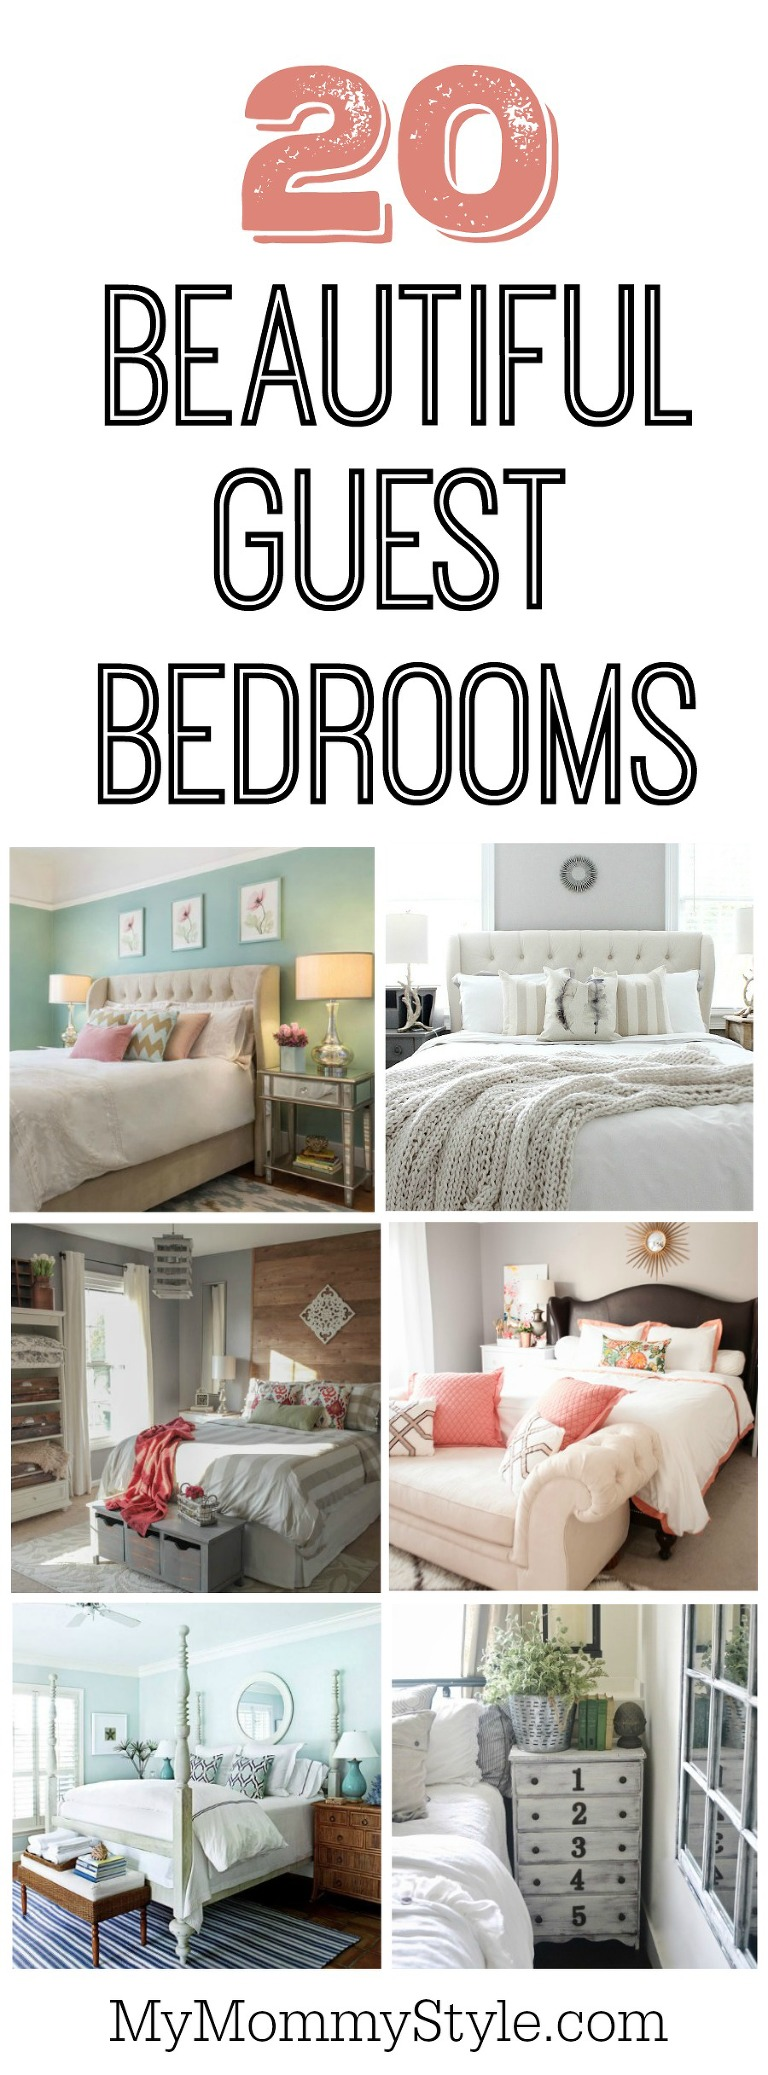 20 beautiful guest bedroom ideas my mommy style for Beautiful bedrooms 2016